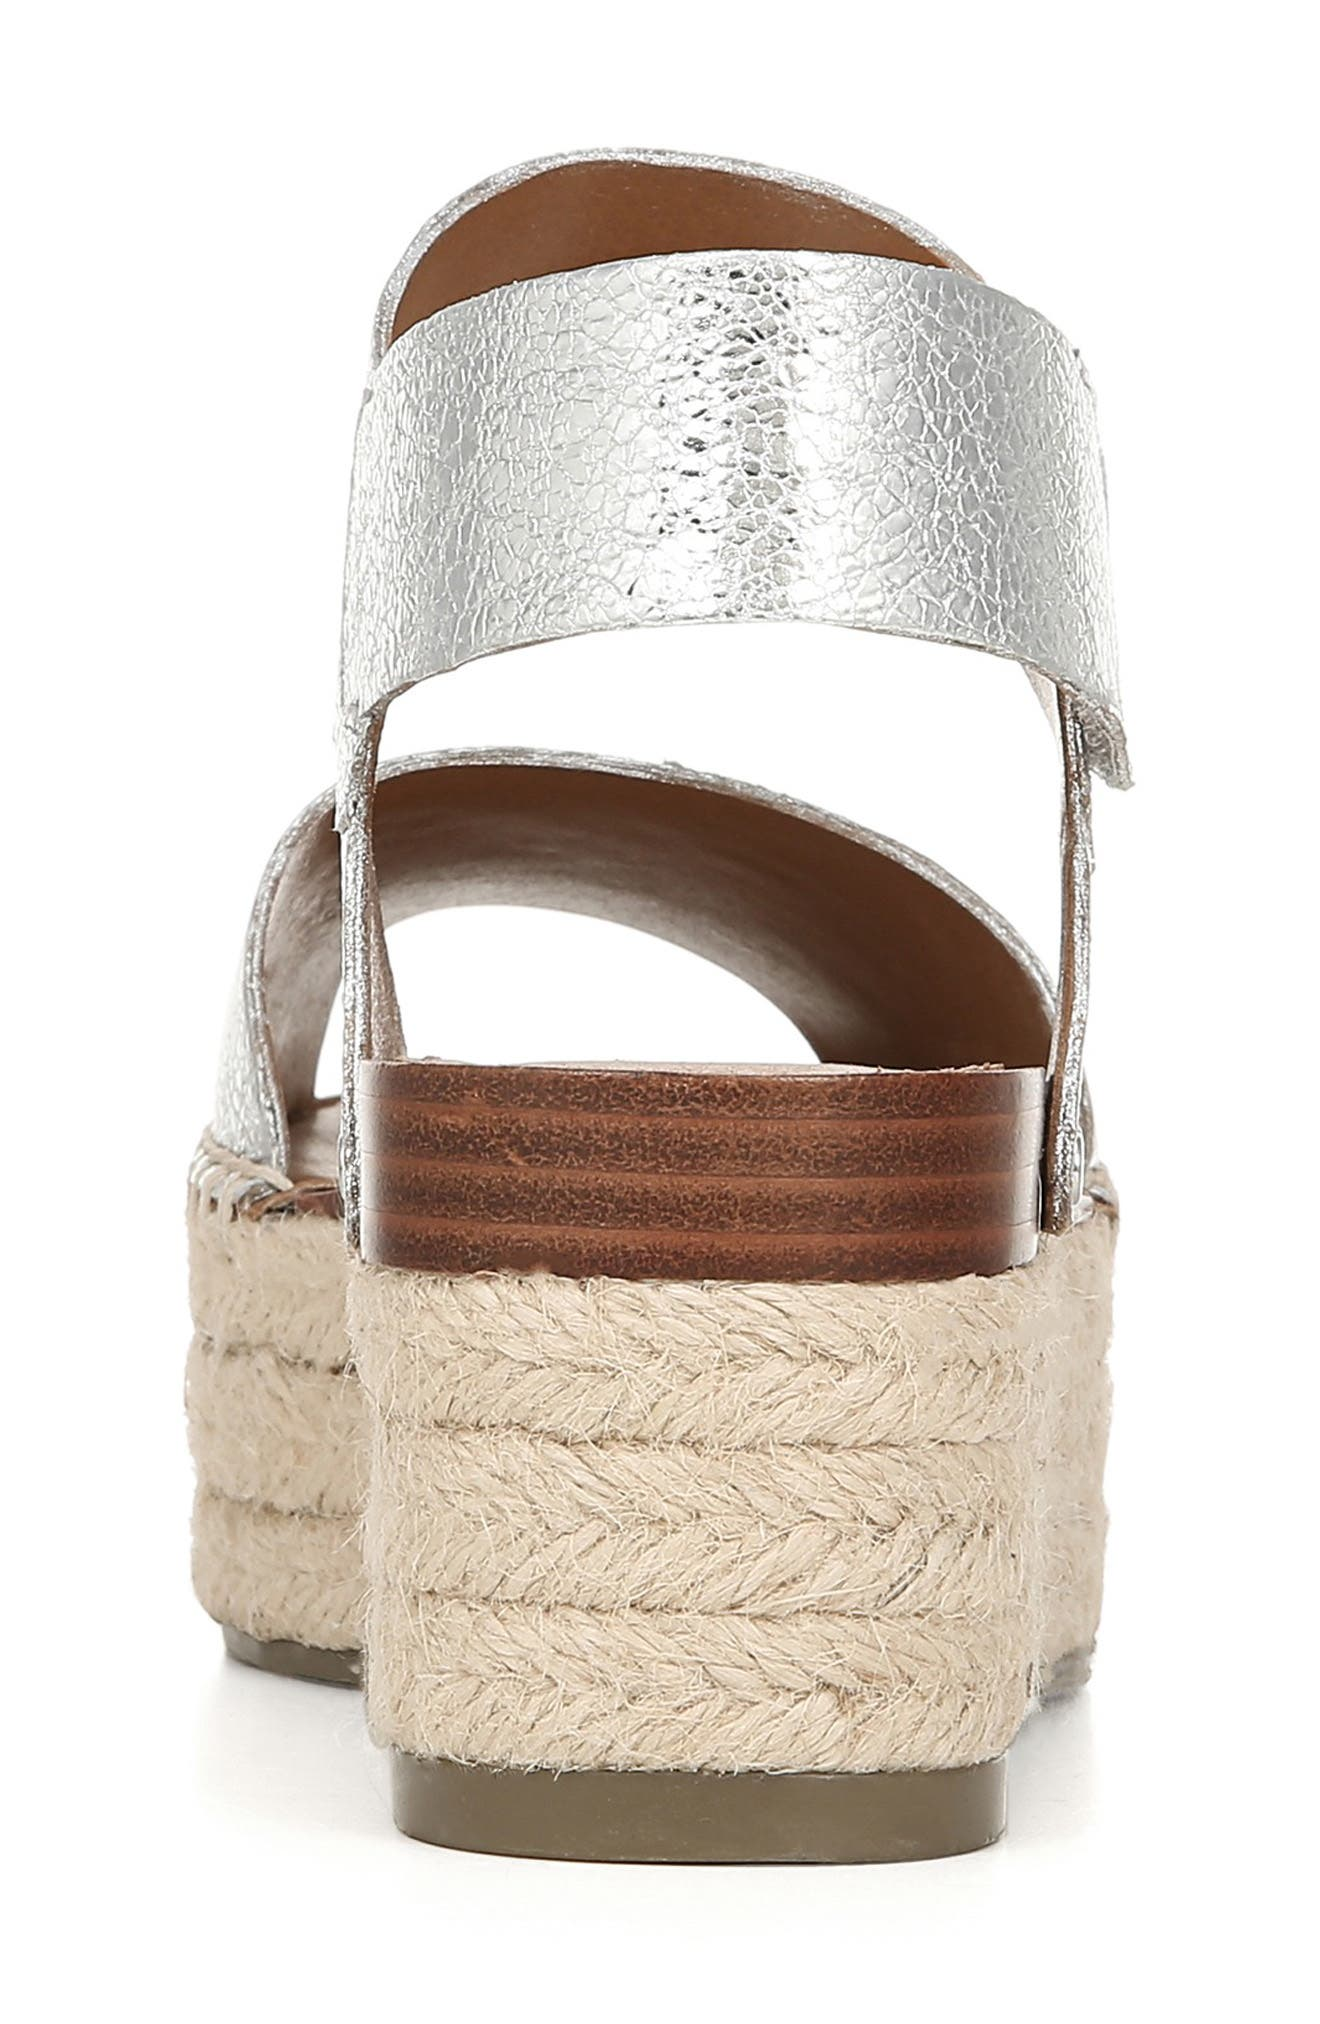 SARTO BY FRANCO SARTO, Leo Platform Espadrille Sandal, Alternate thumbnail 7, color, SILVER LEATHER